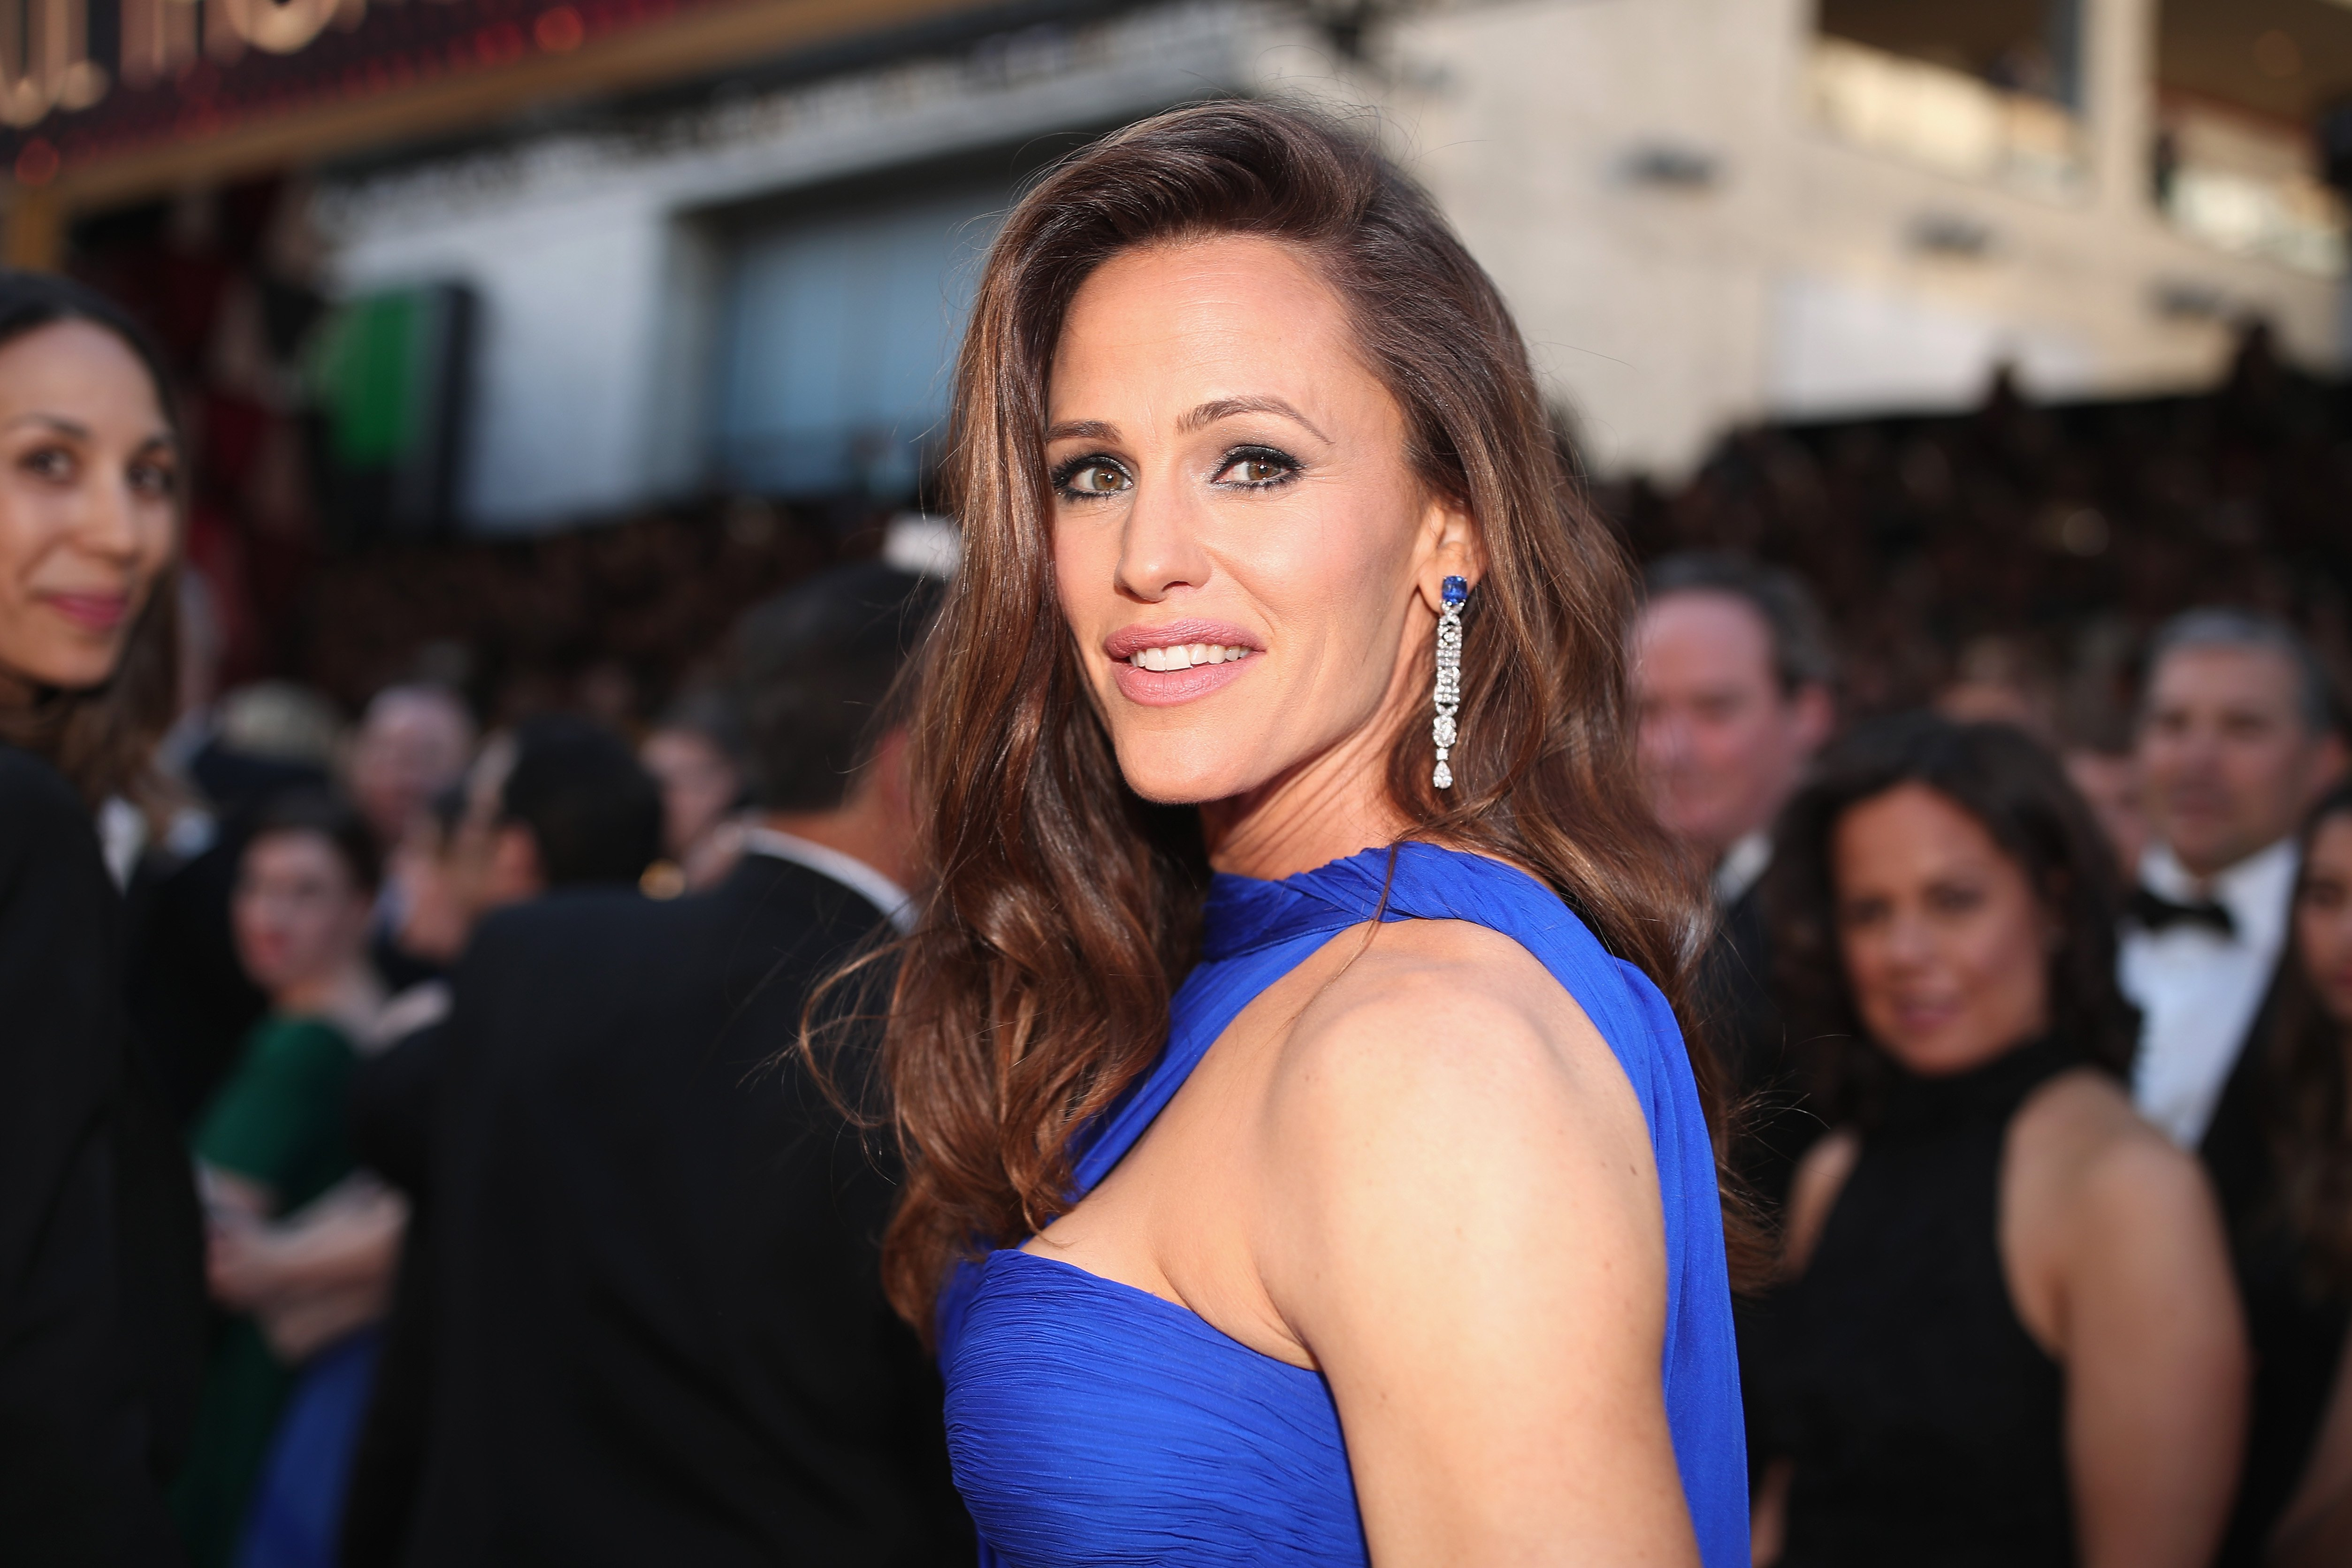 Jennifer Garner attends the 90th Annual Academy Awards on March 4, 2018, in Hollywood, California. | Source: Getty Images.